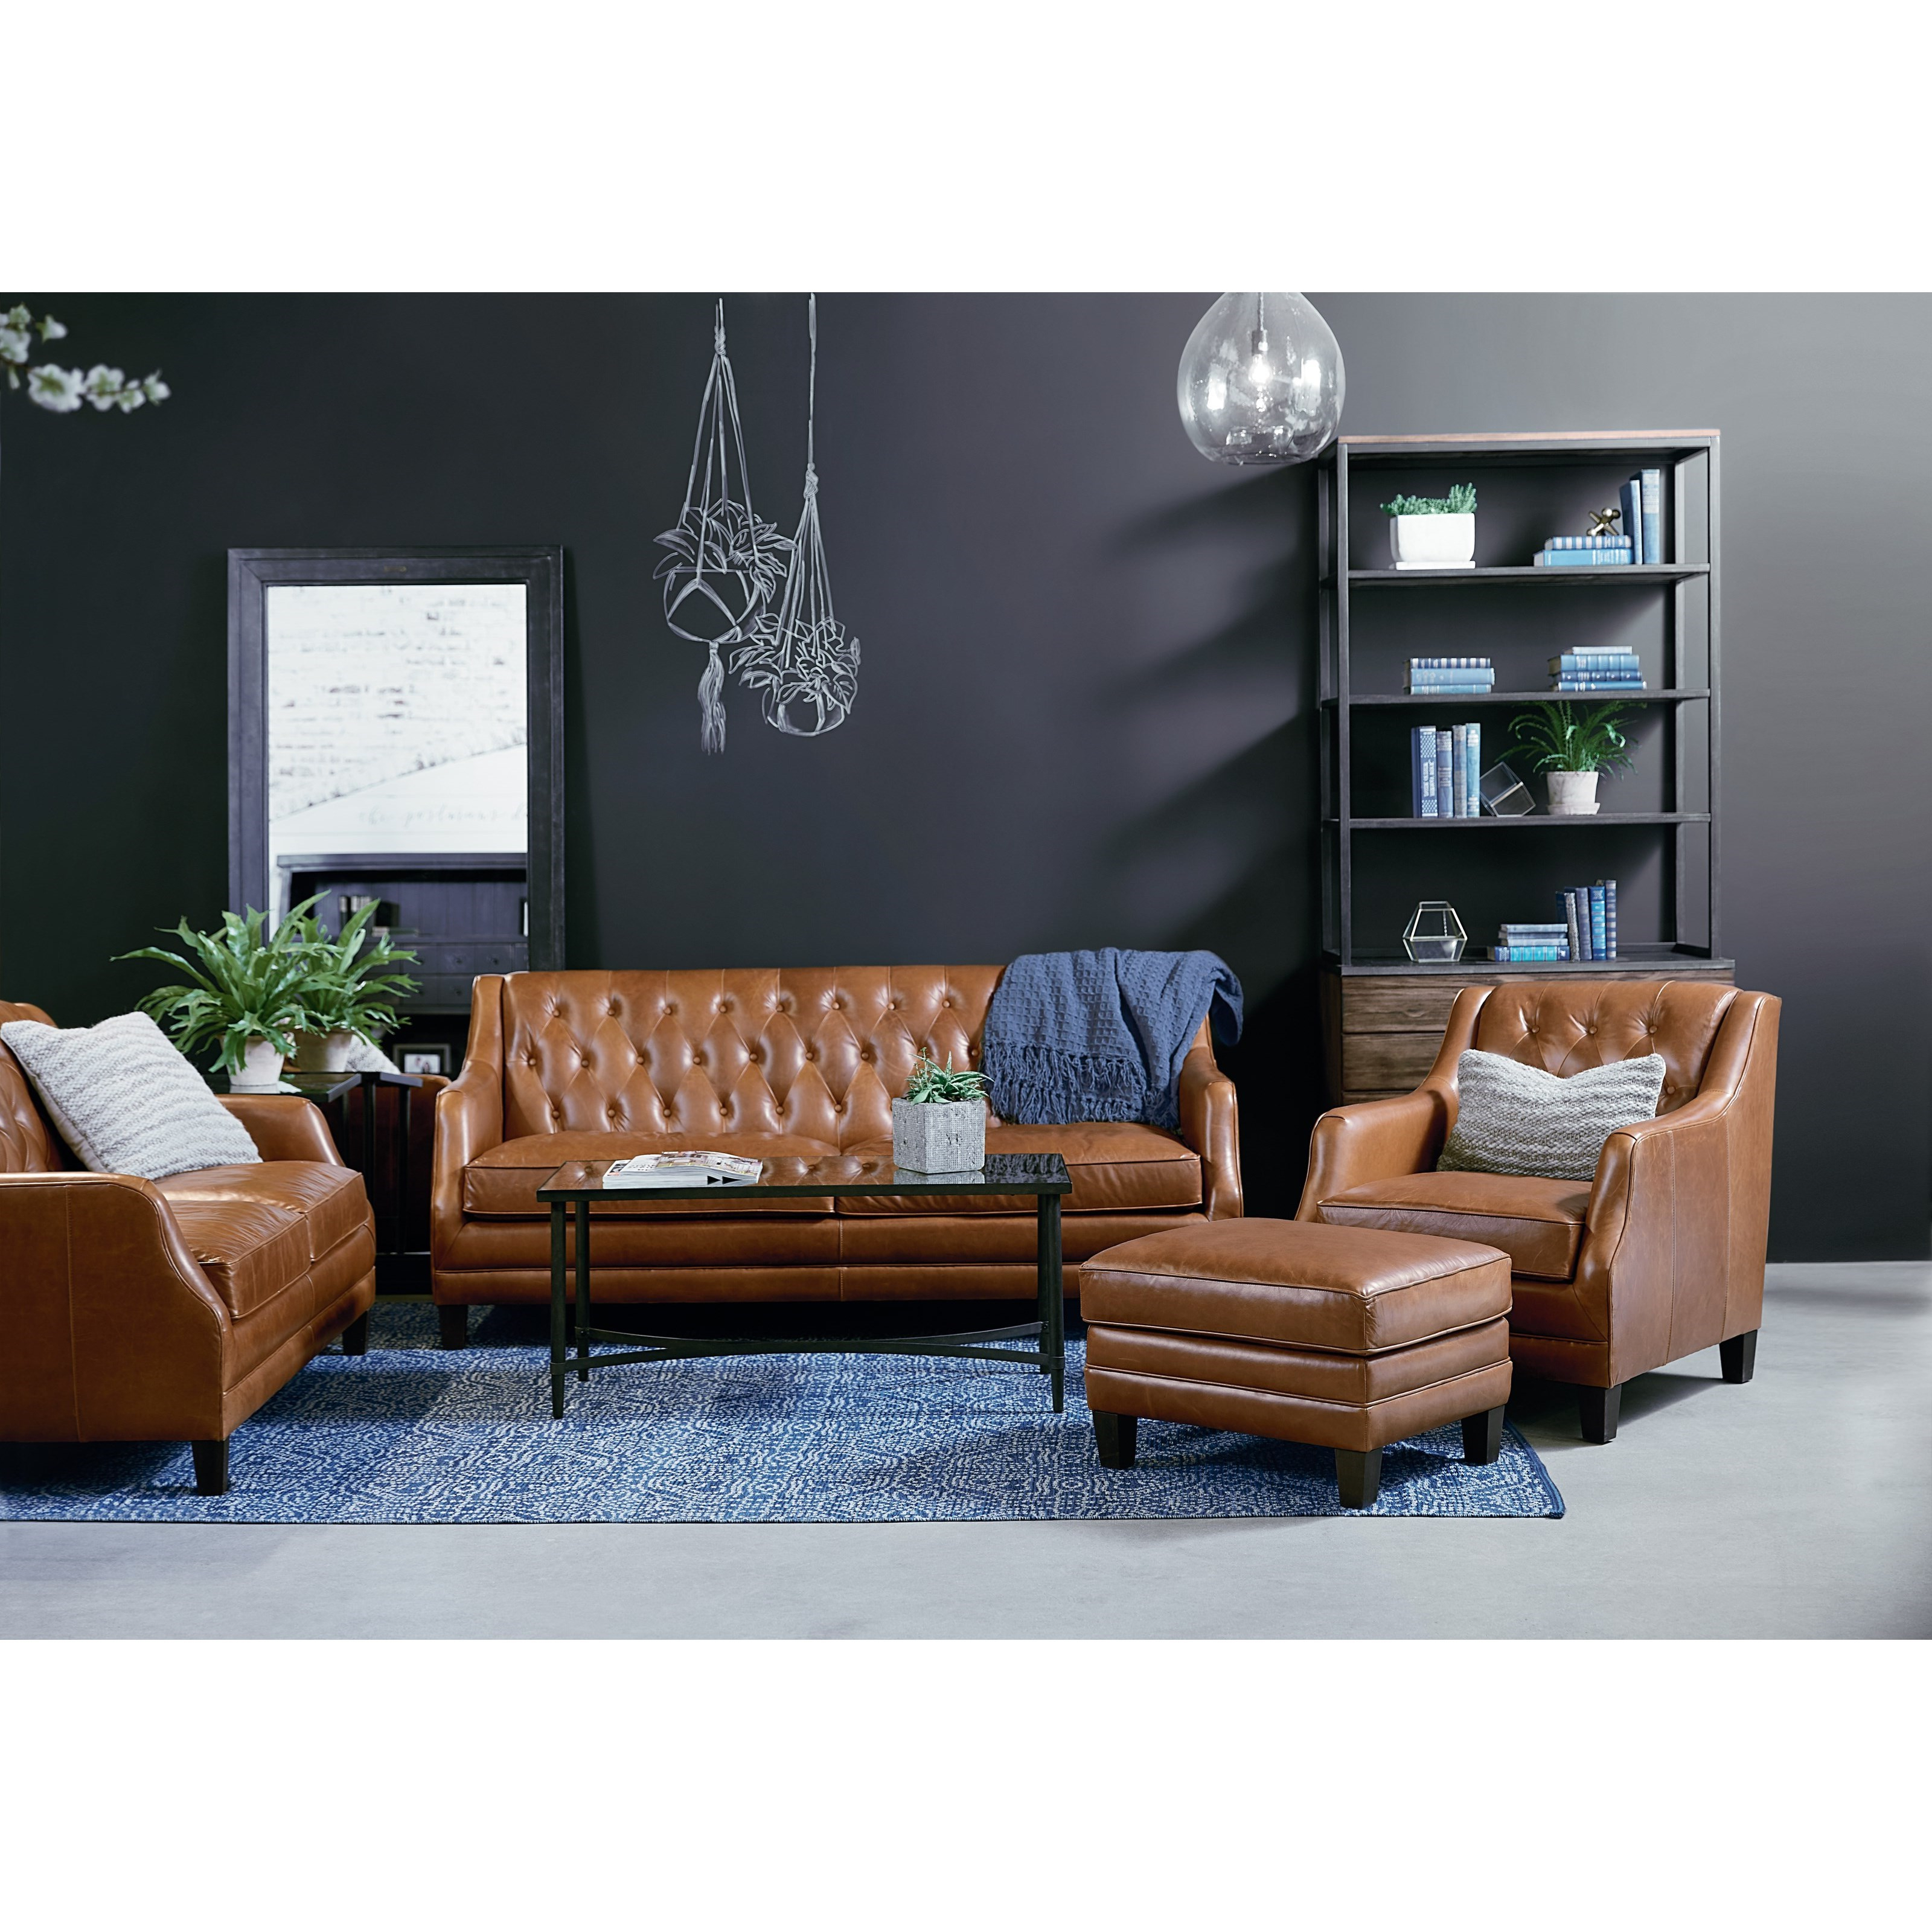 Magnolia Home Sectional Sofa (View 18 of 20)